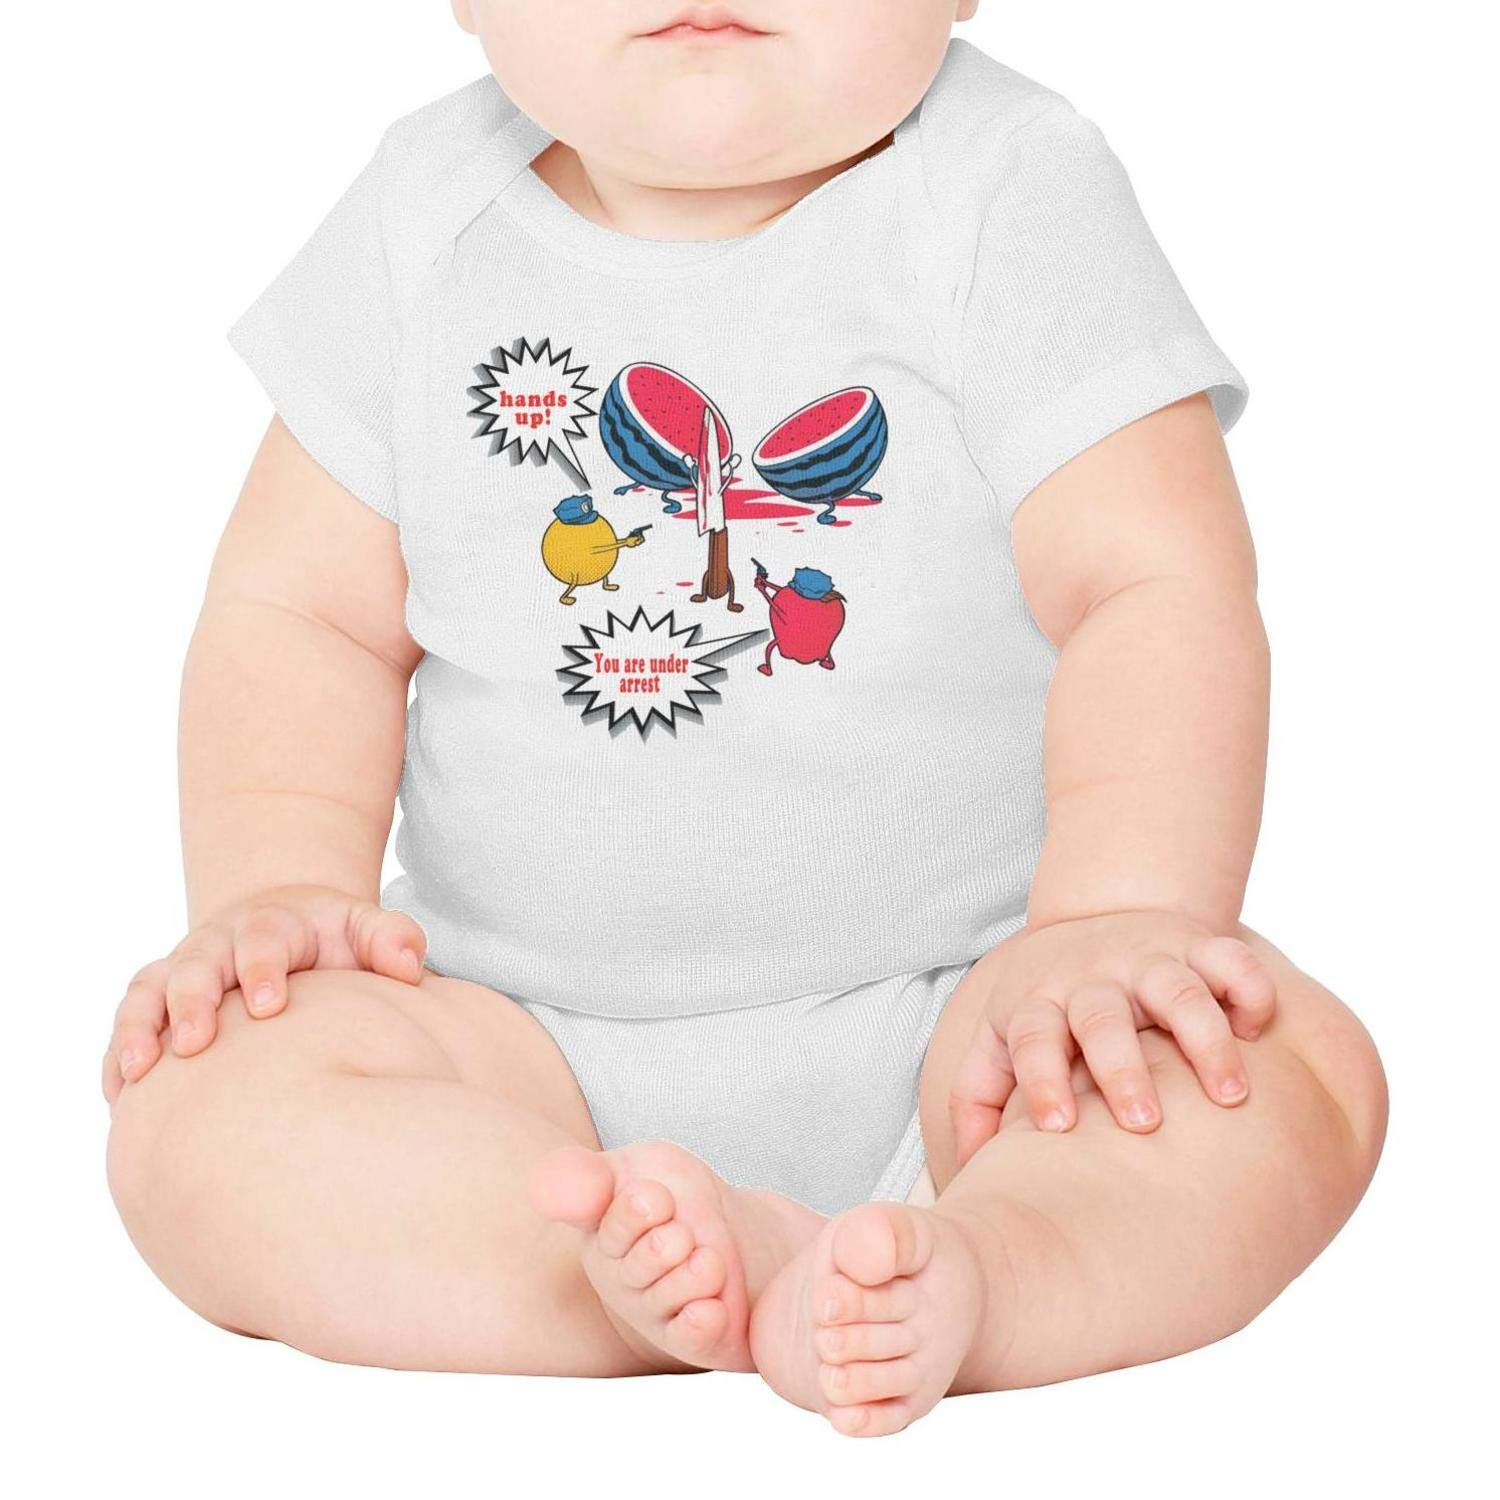 The knief Kill The Watermelon Short Sleeve Natural Organic Baby Onesie Outfits 0-3 Months for Infant Boys Girls